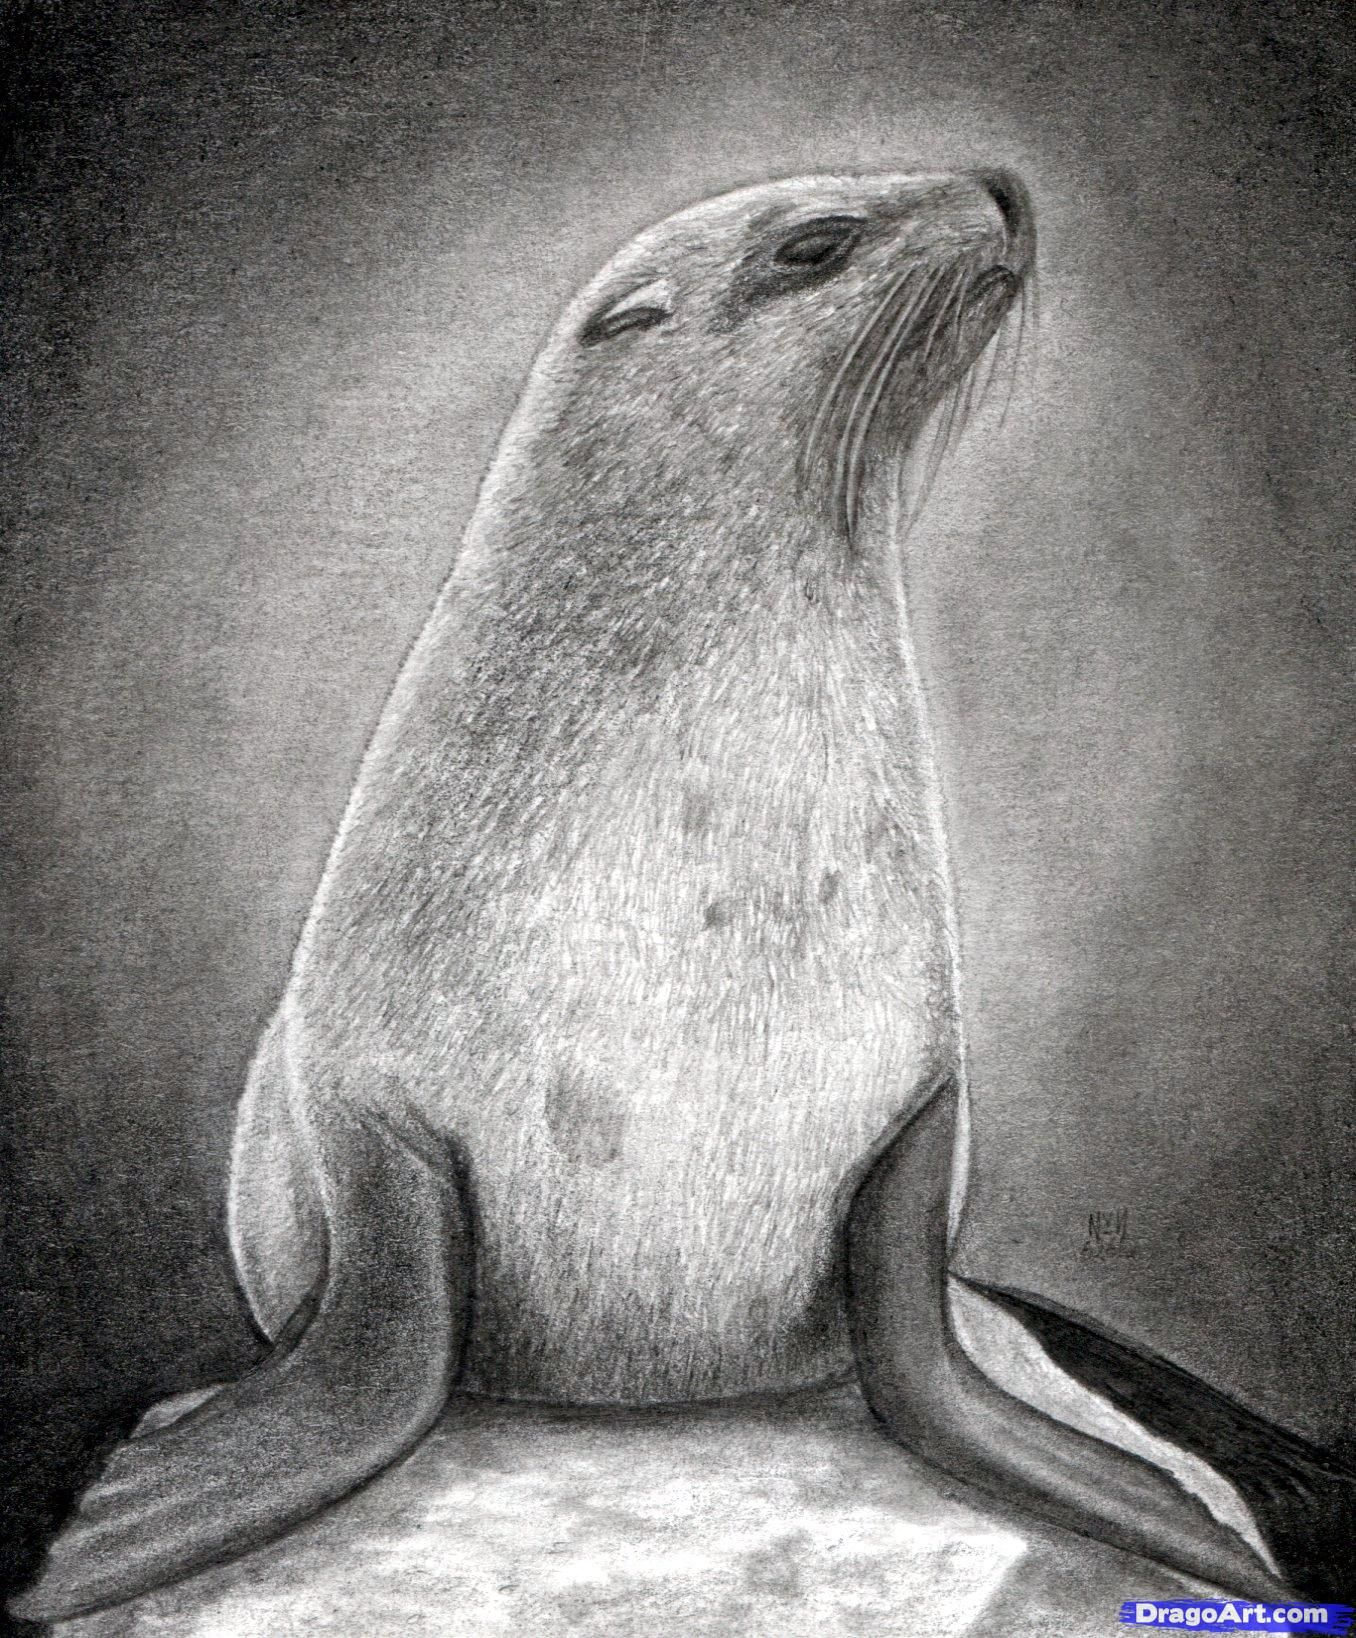 How to Draw a Realistic Seal, Cape Fur Seal Animal